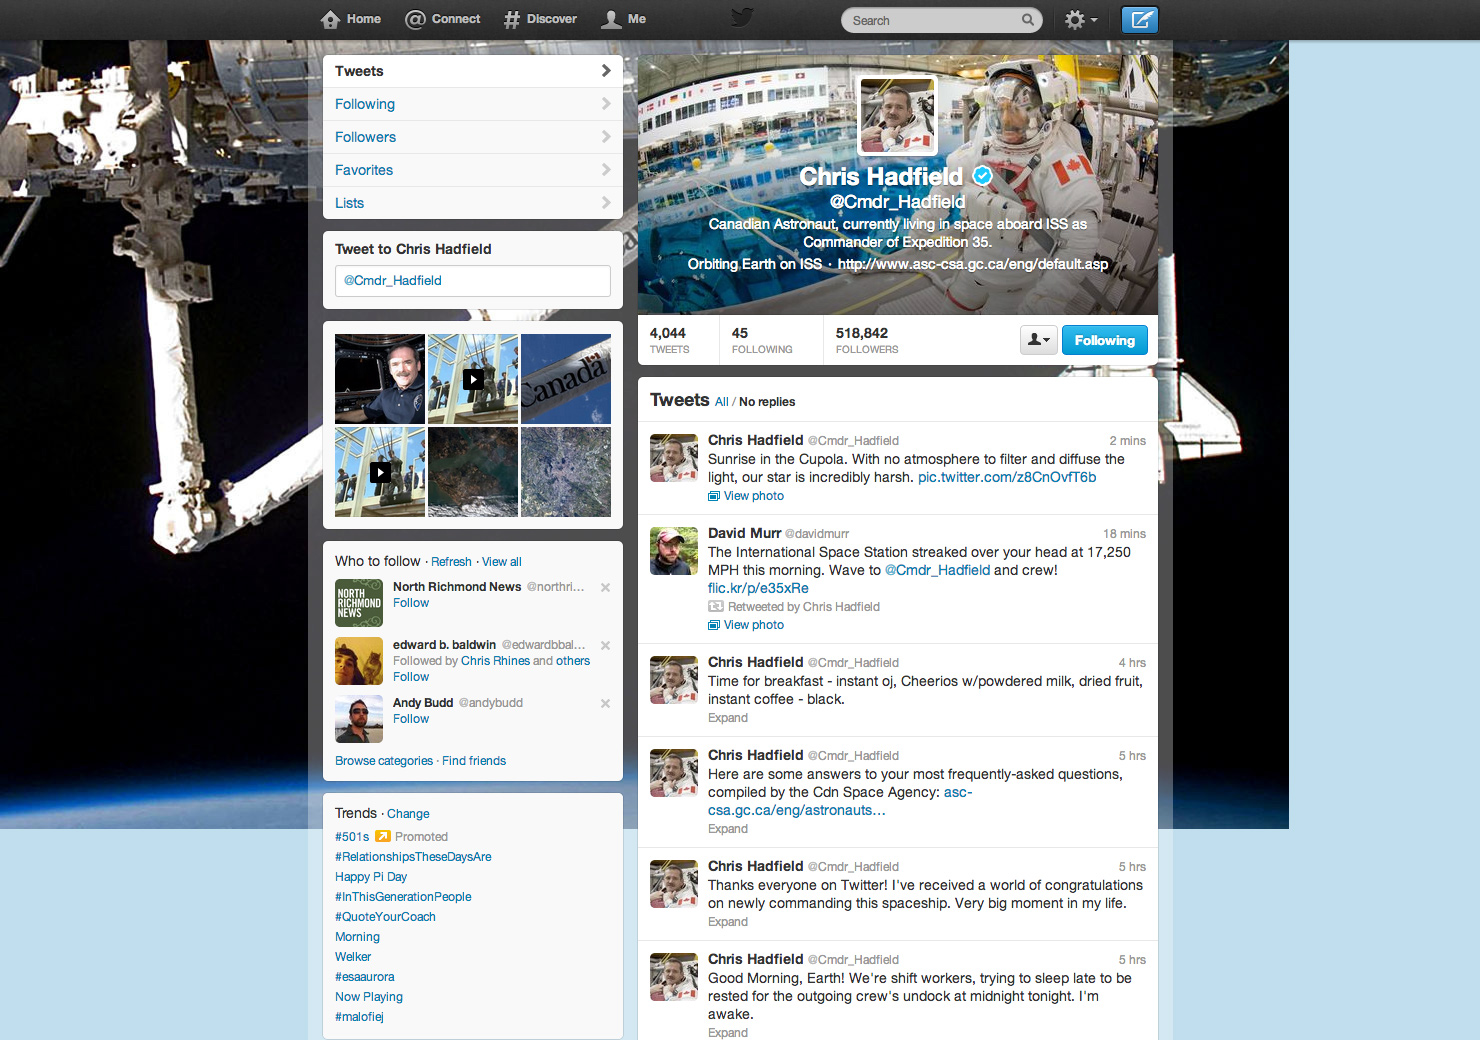 Chris Hadfield retweeted me from space!